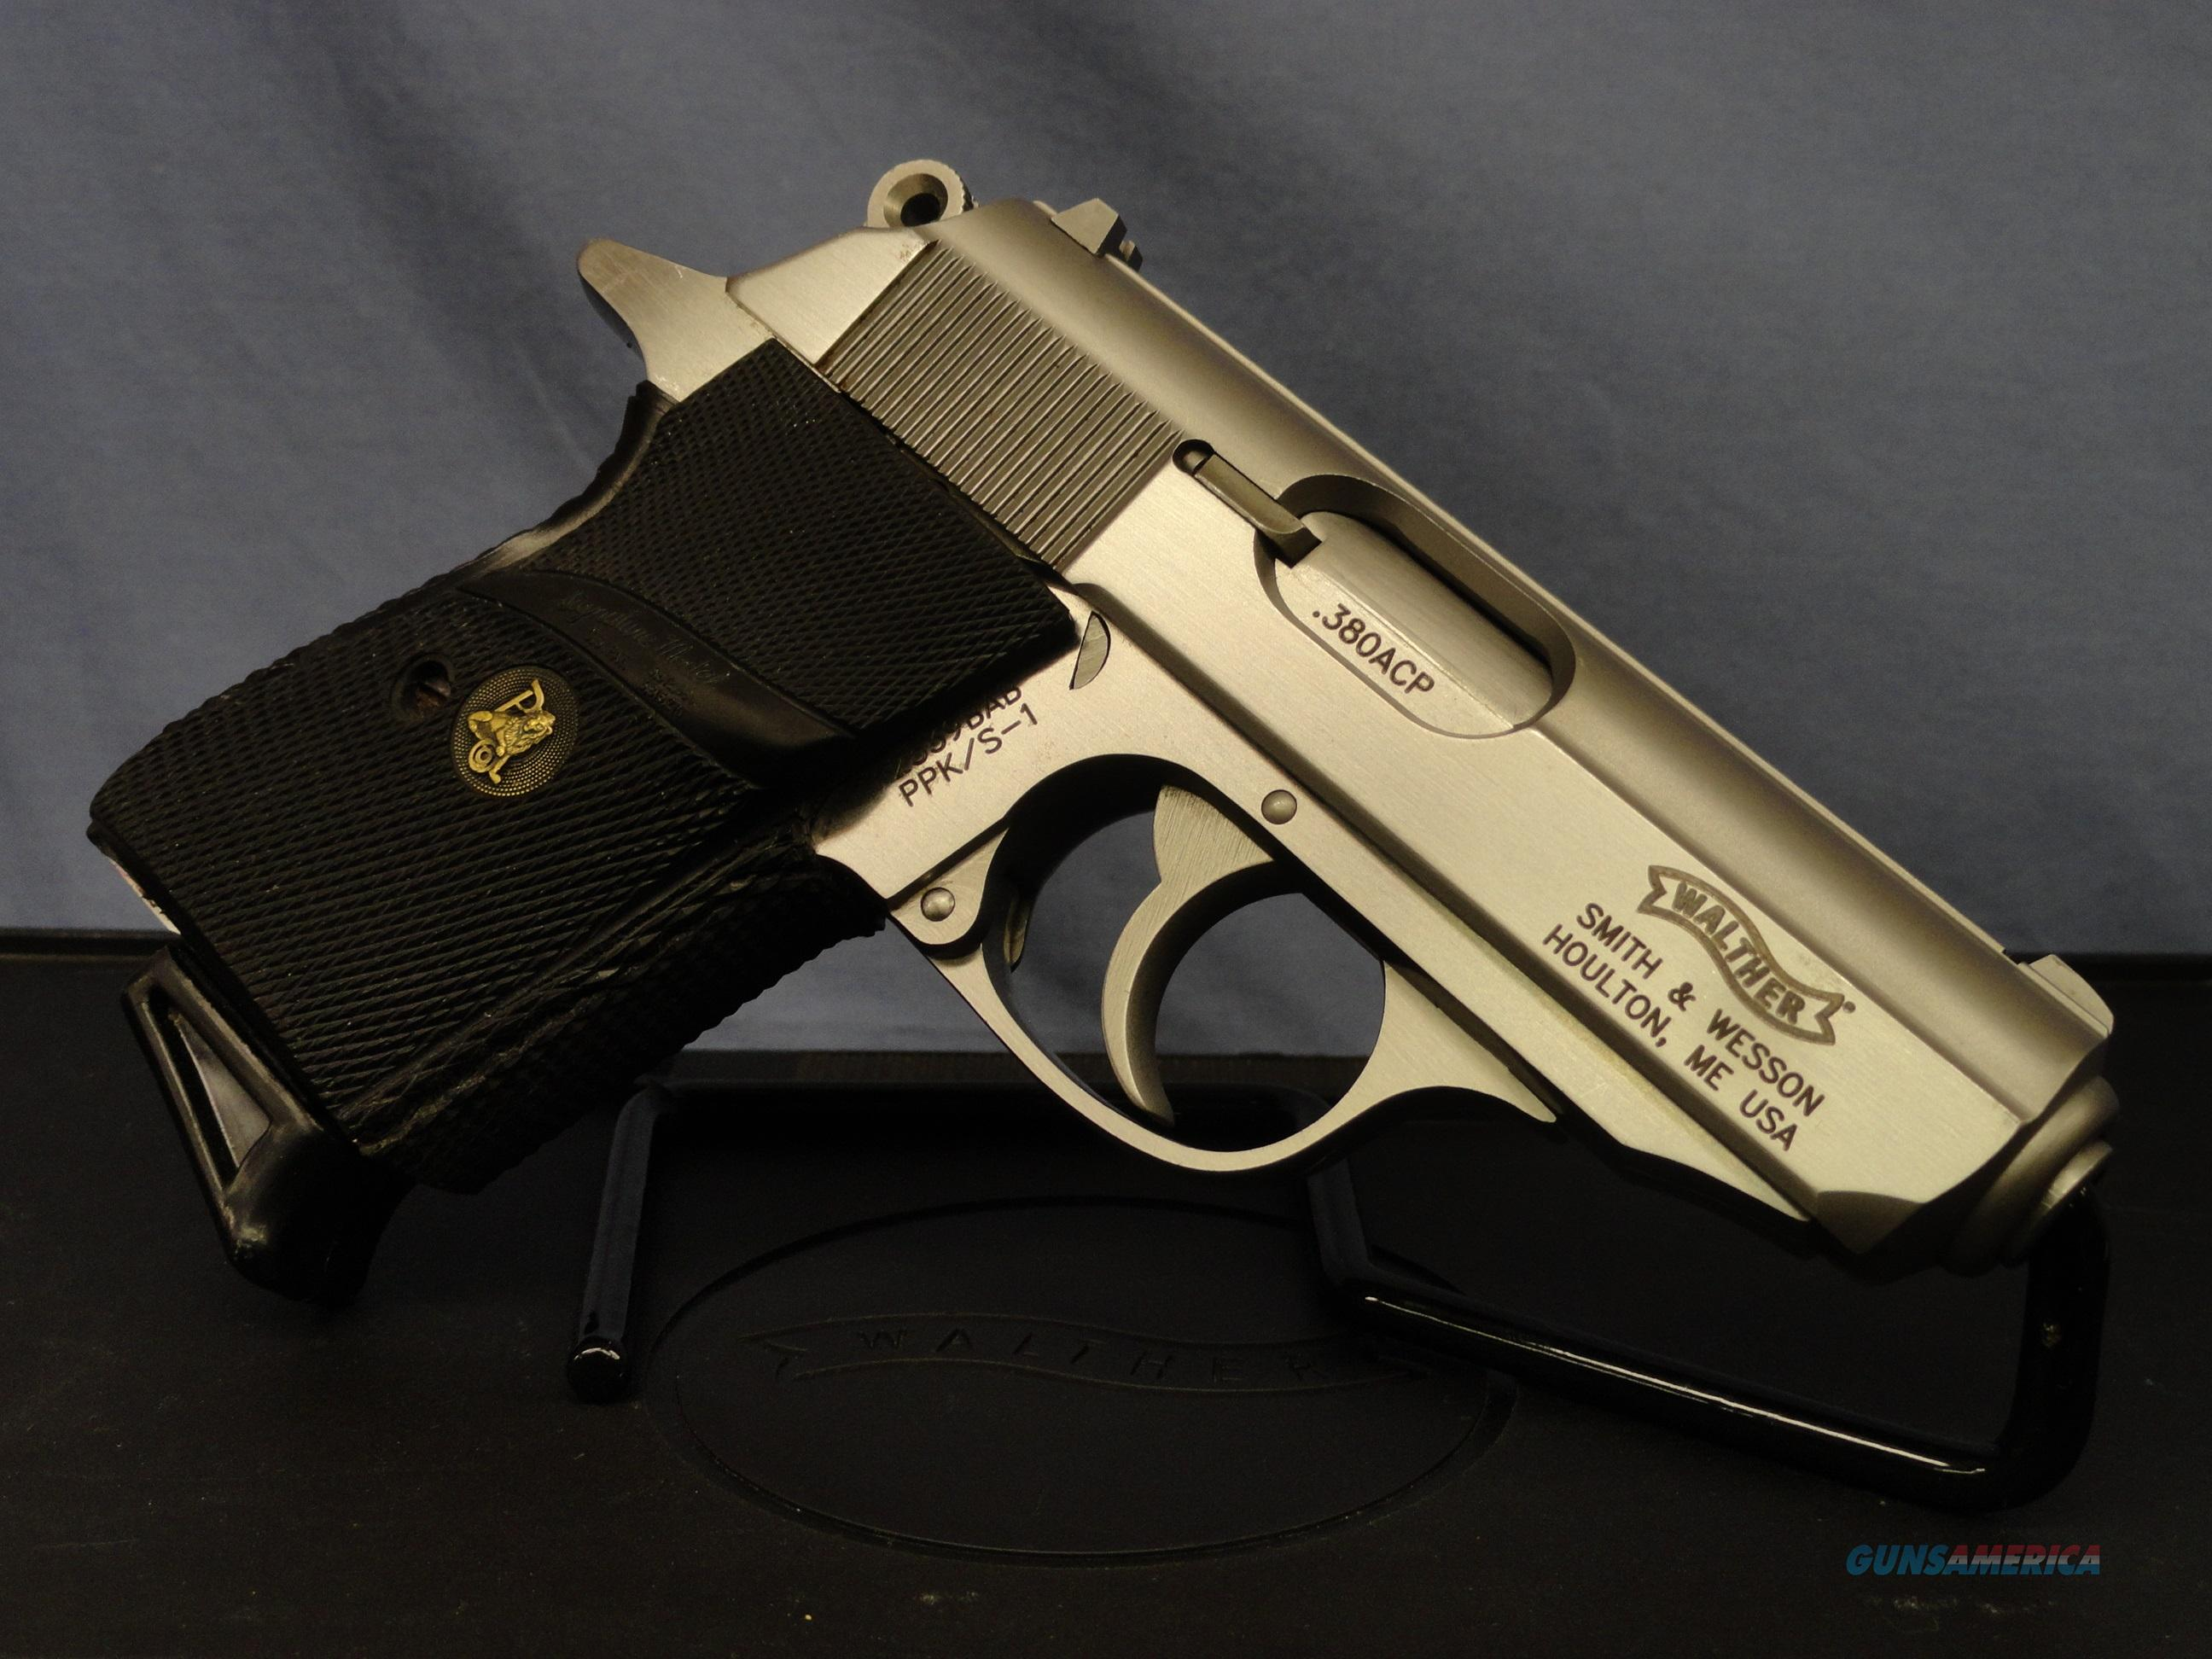 walther ppk s 1 380 accessories included for sale rh gunsamerica com Word Manual Guide User Guide Icon